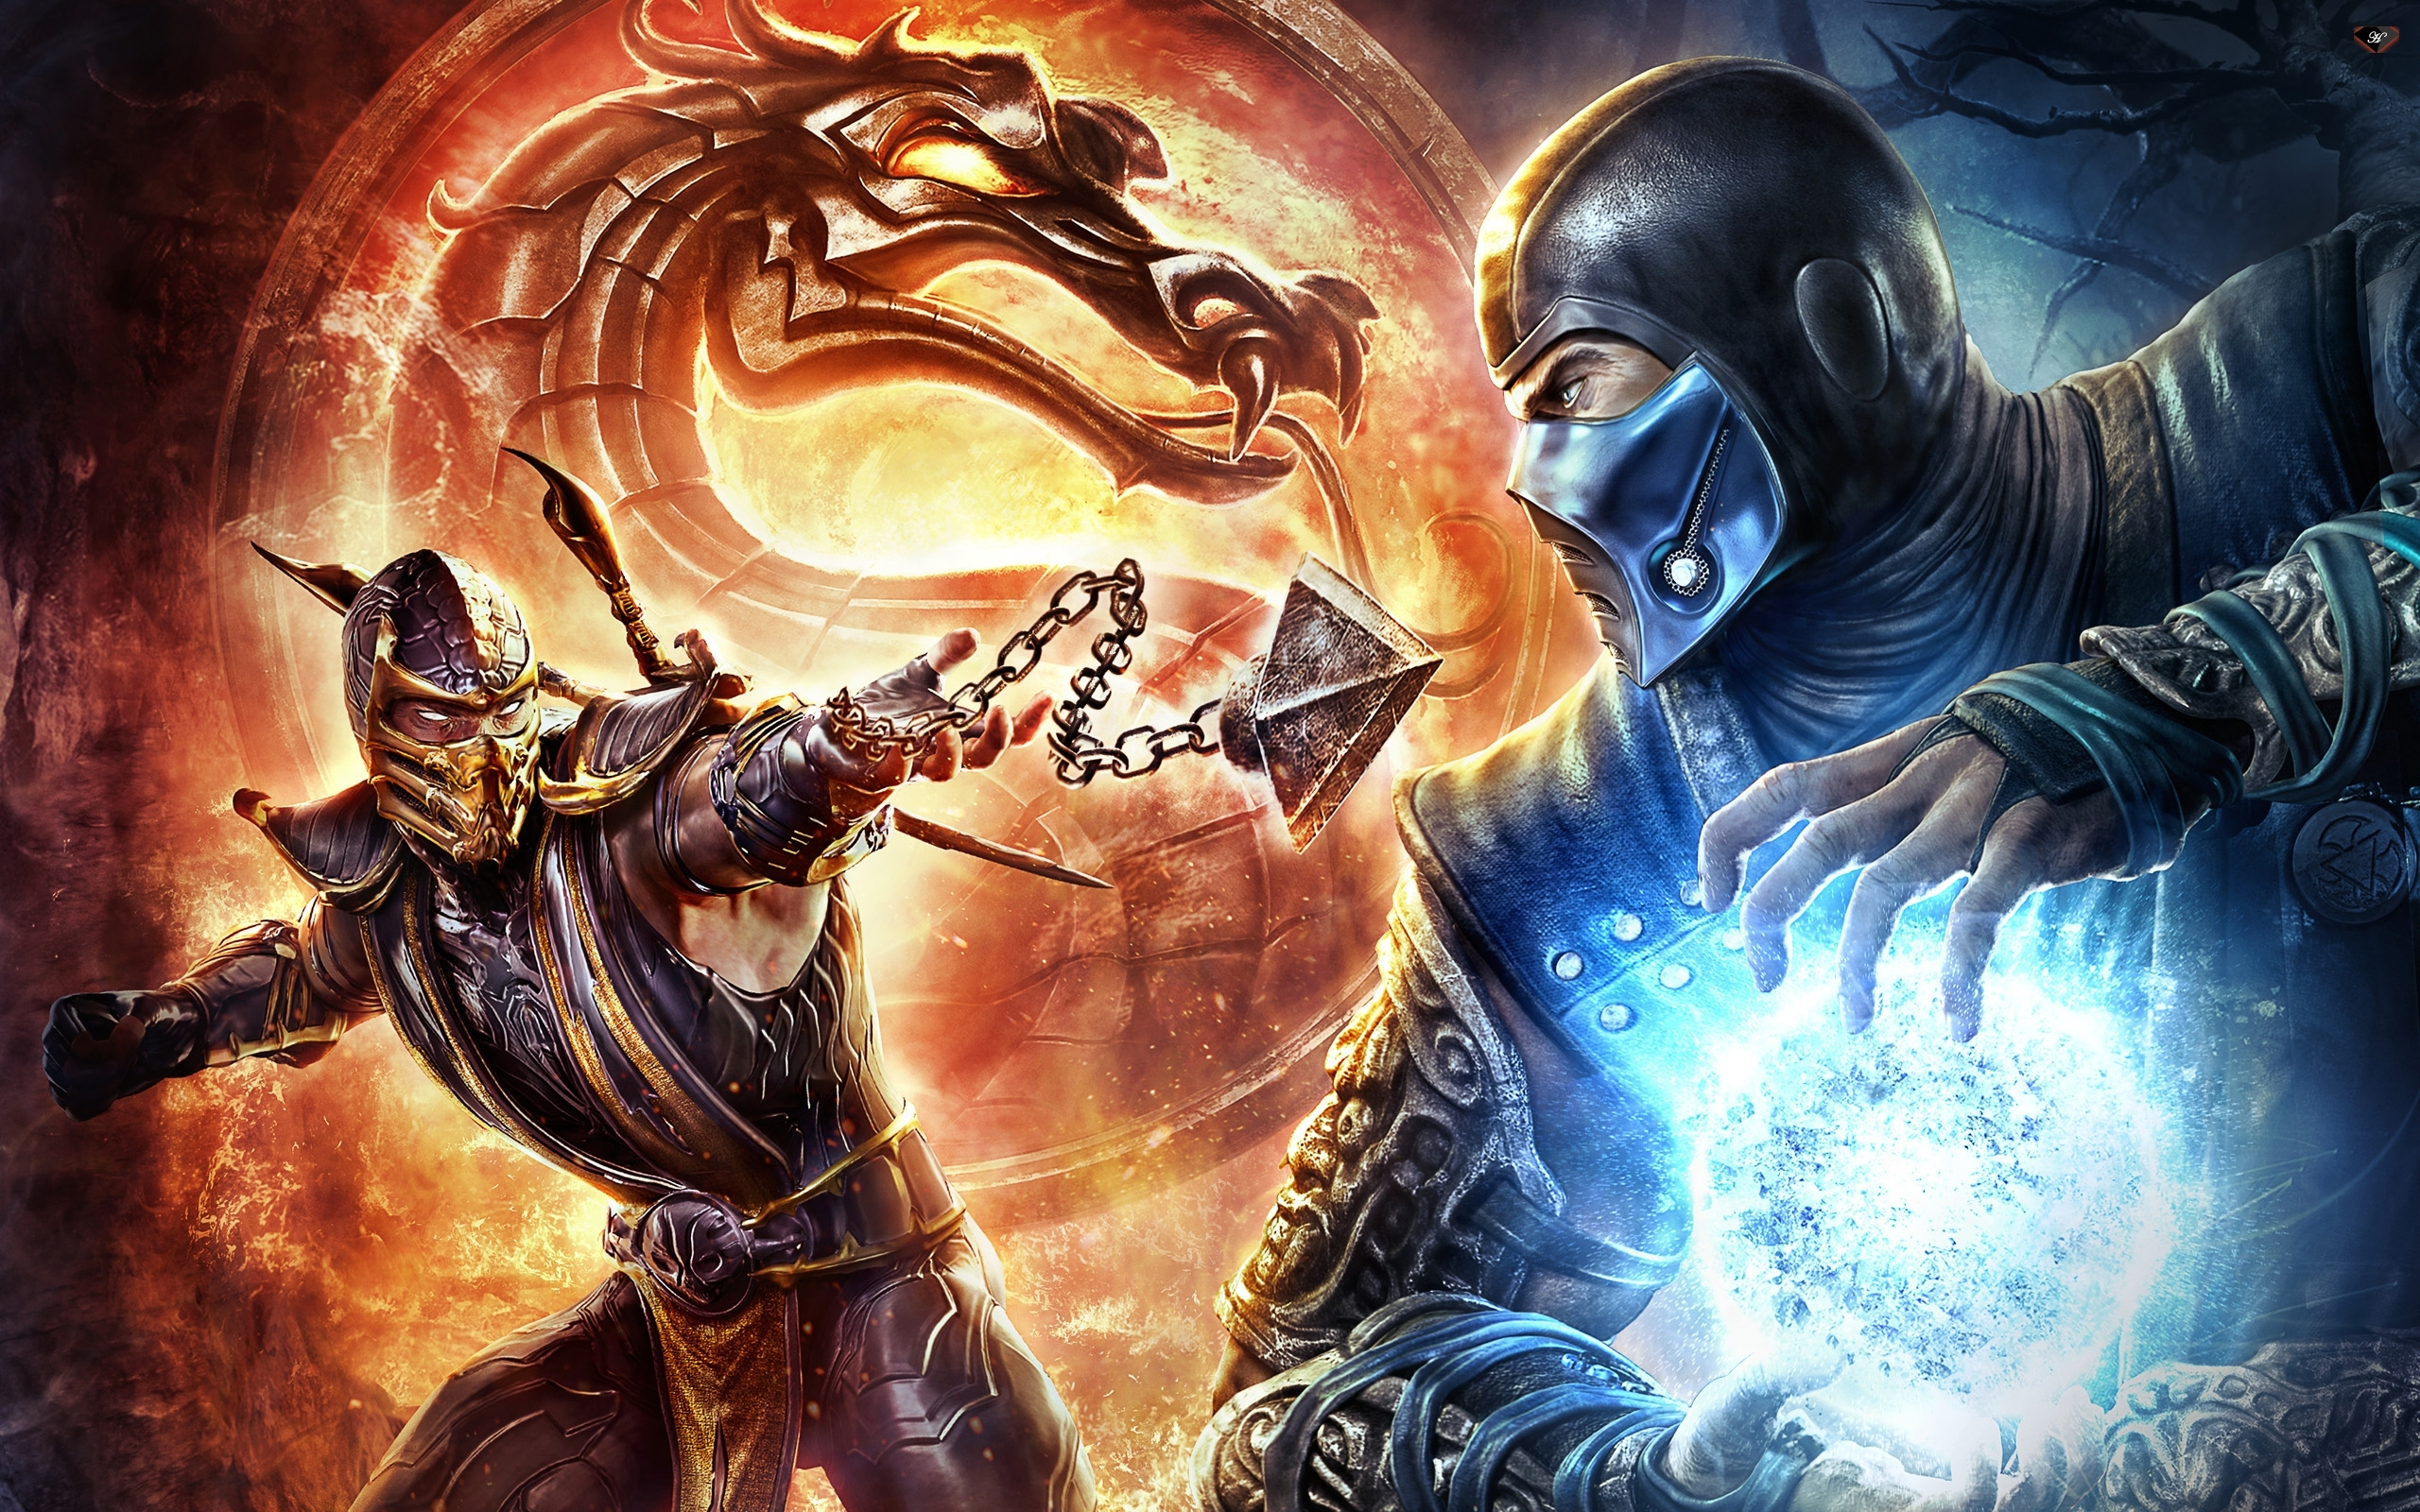 209 mortal kombat hd wallpapers | background images - wallpaper abyss